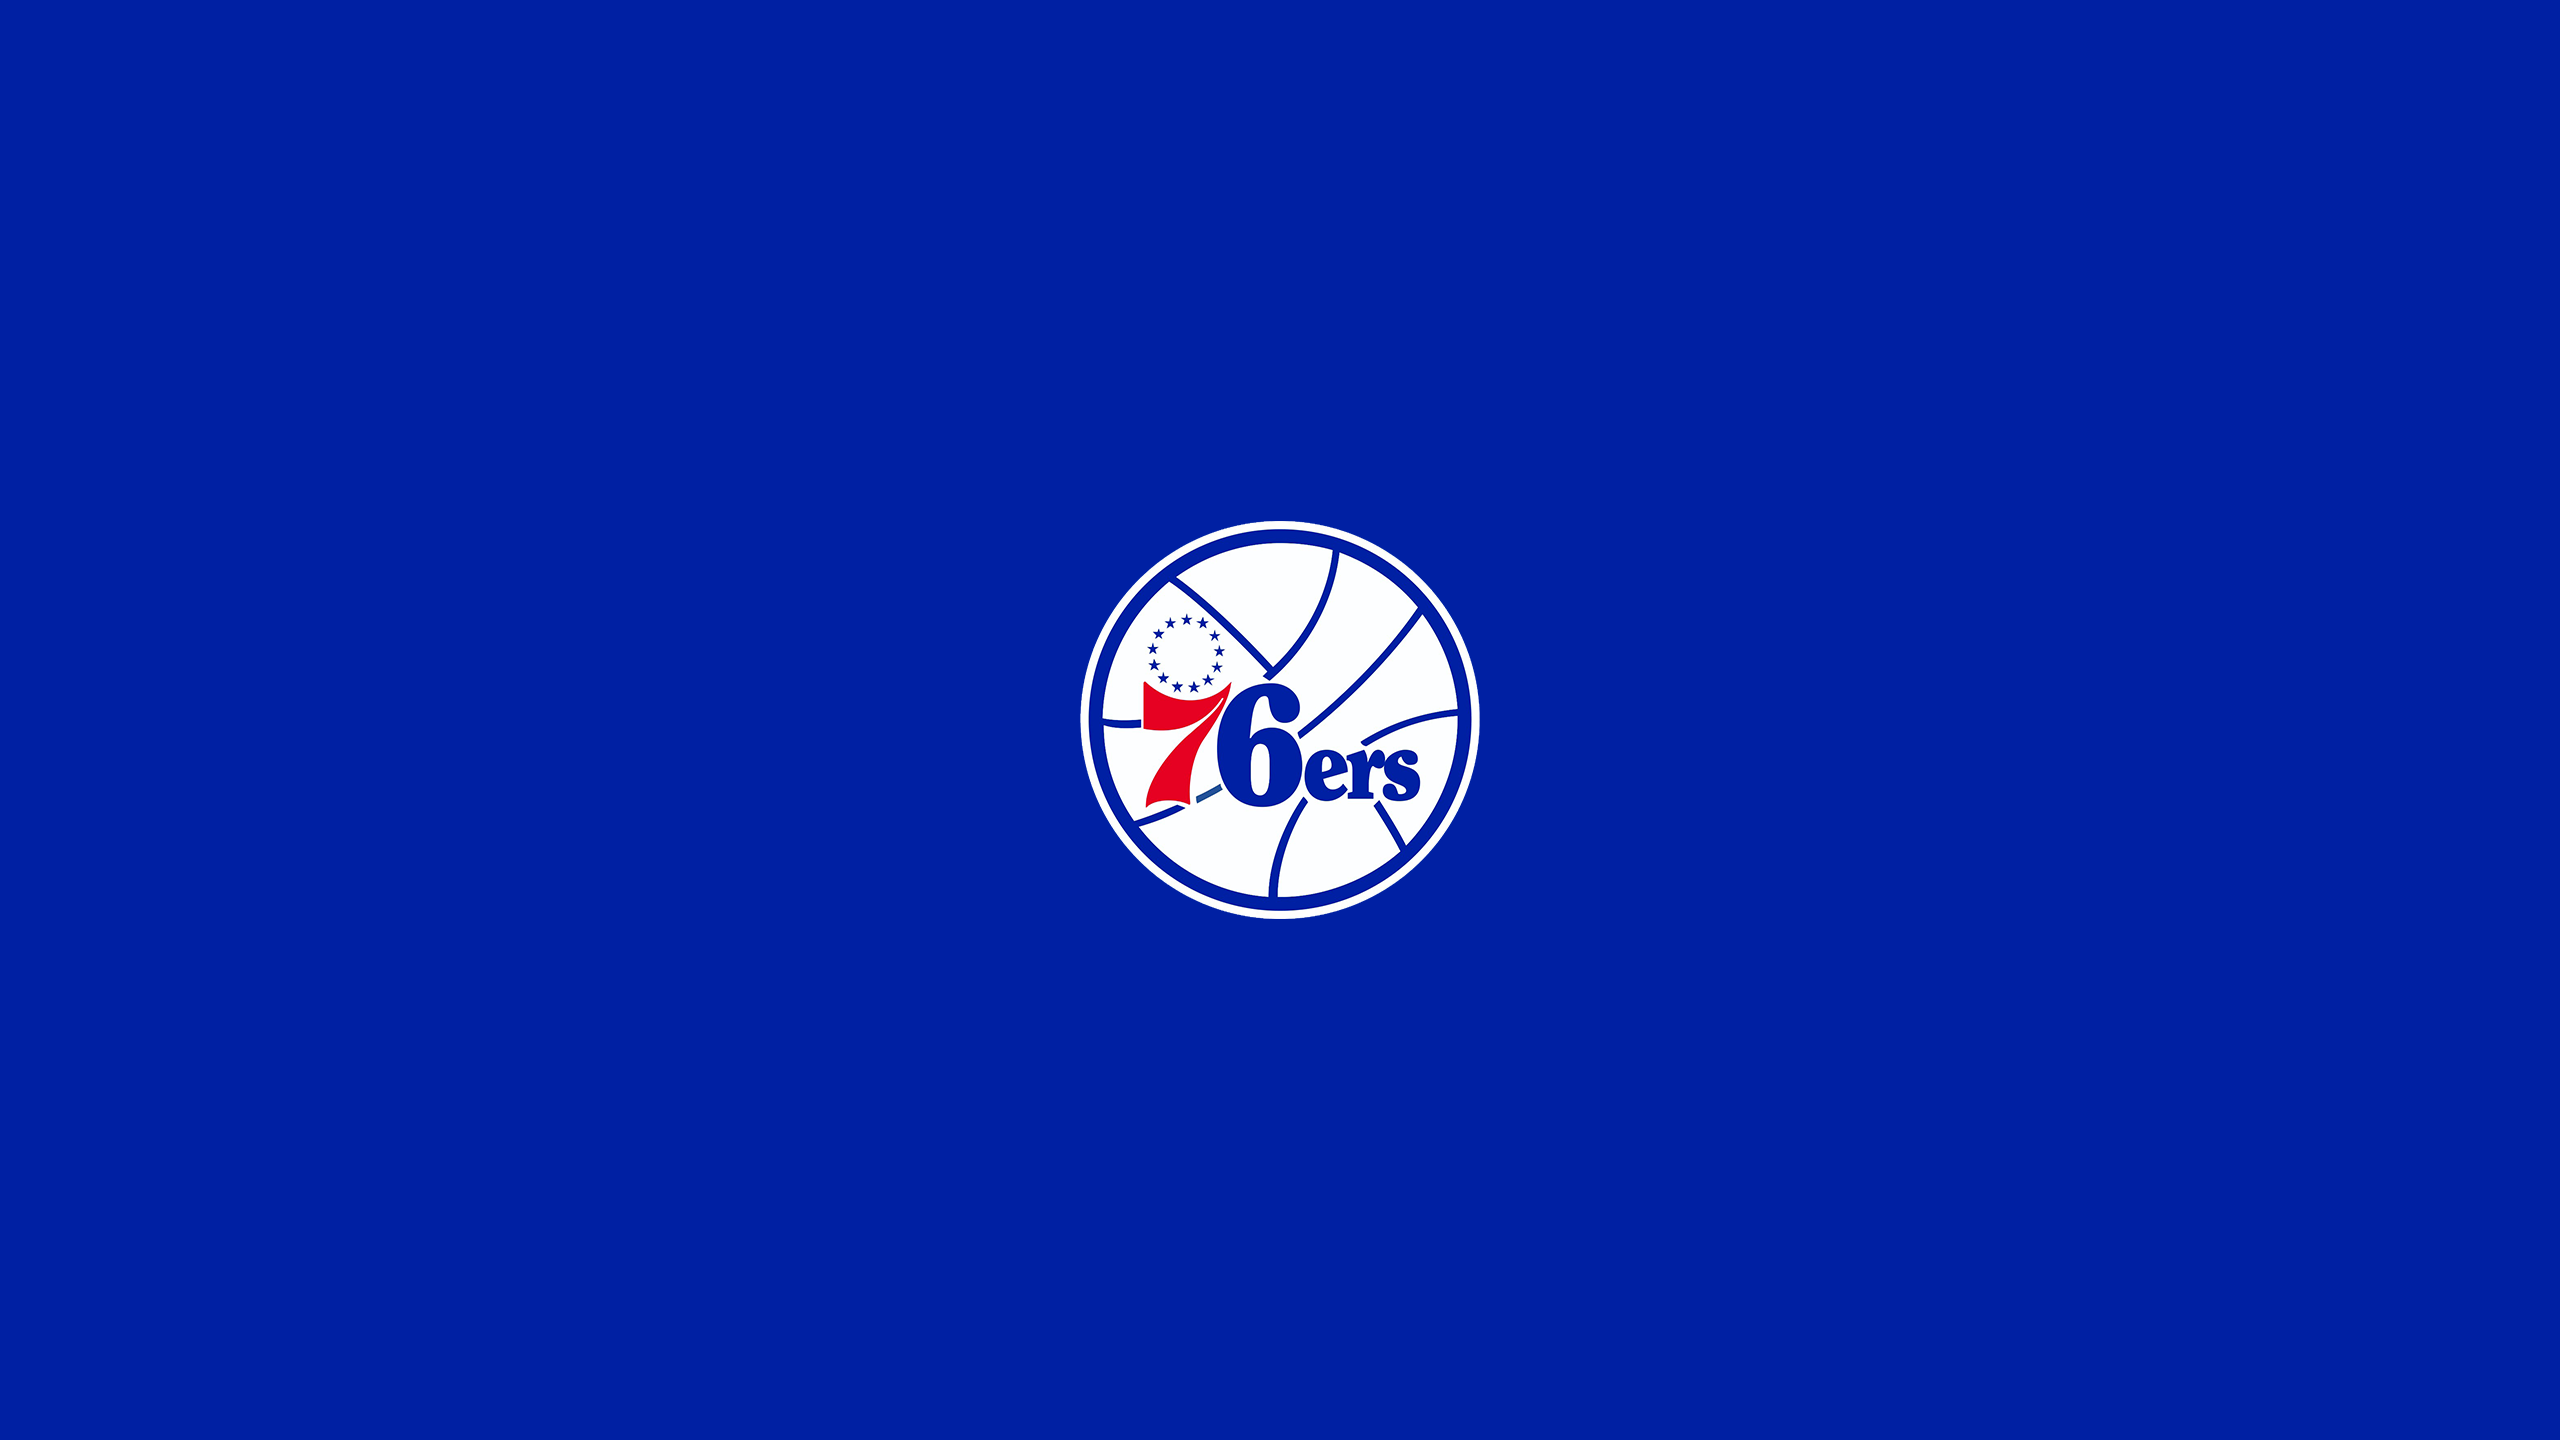 Philadelphia 76ers (Old School)